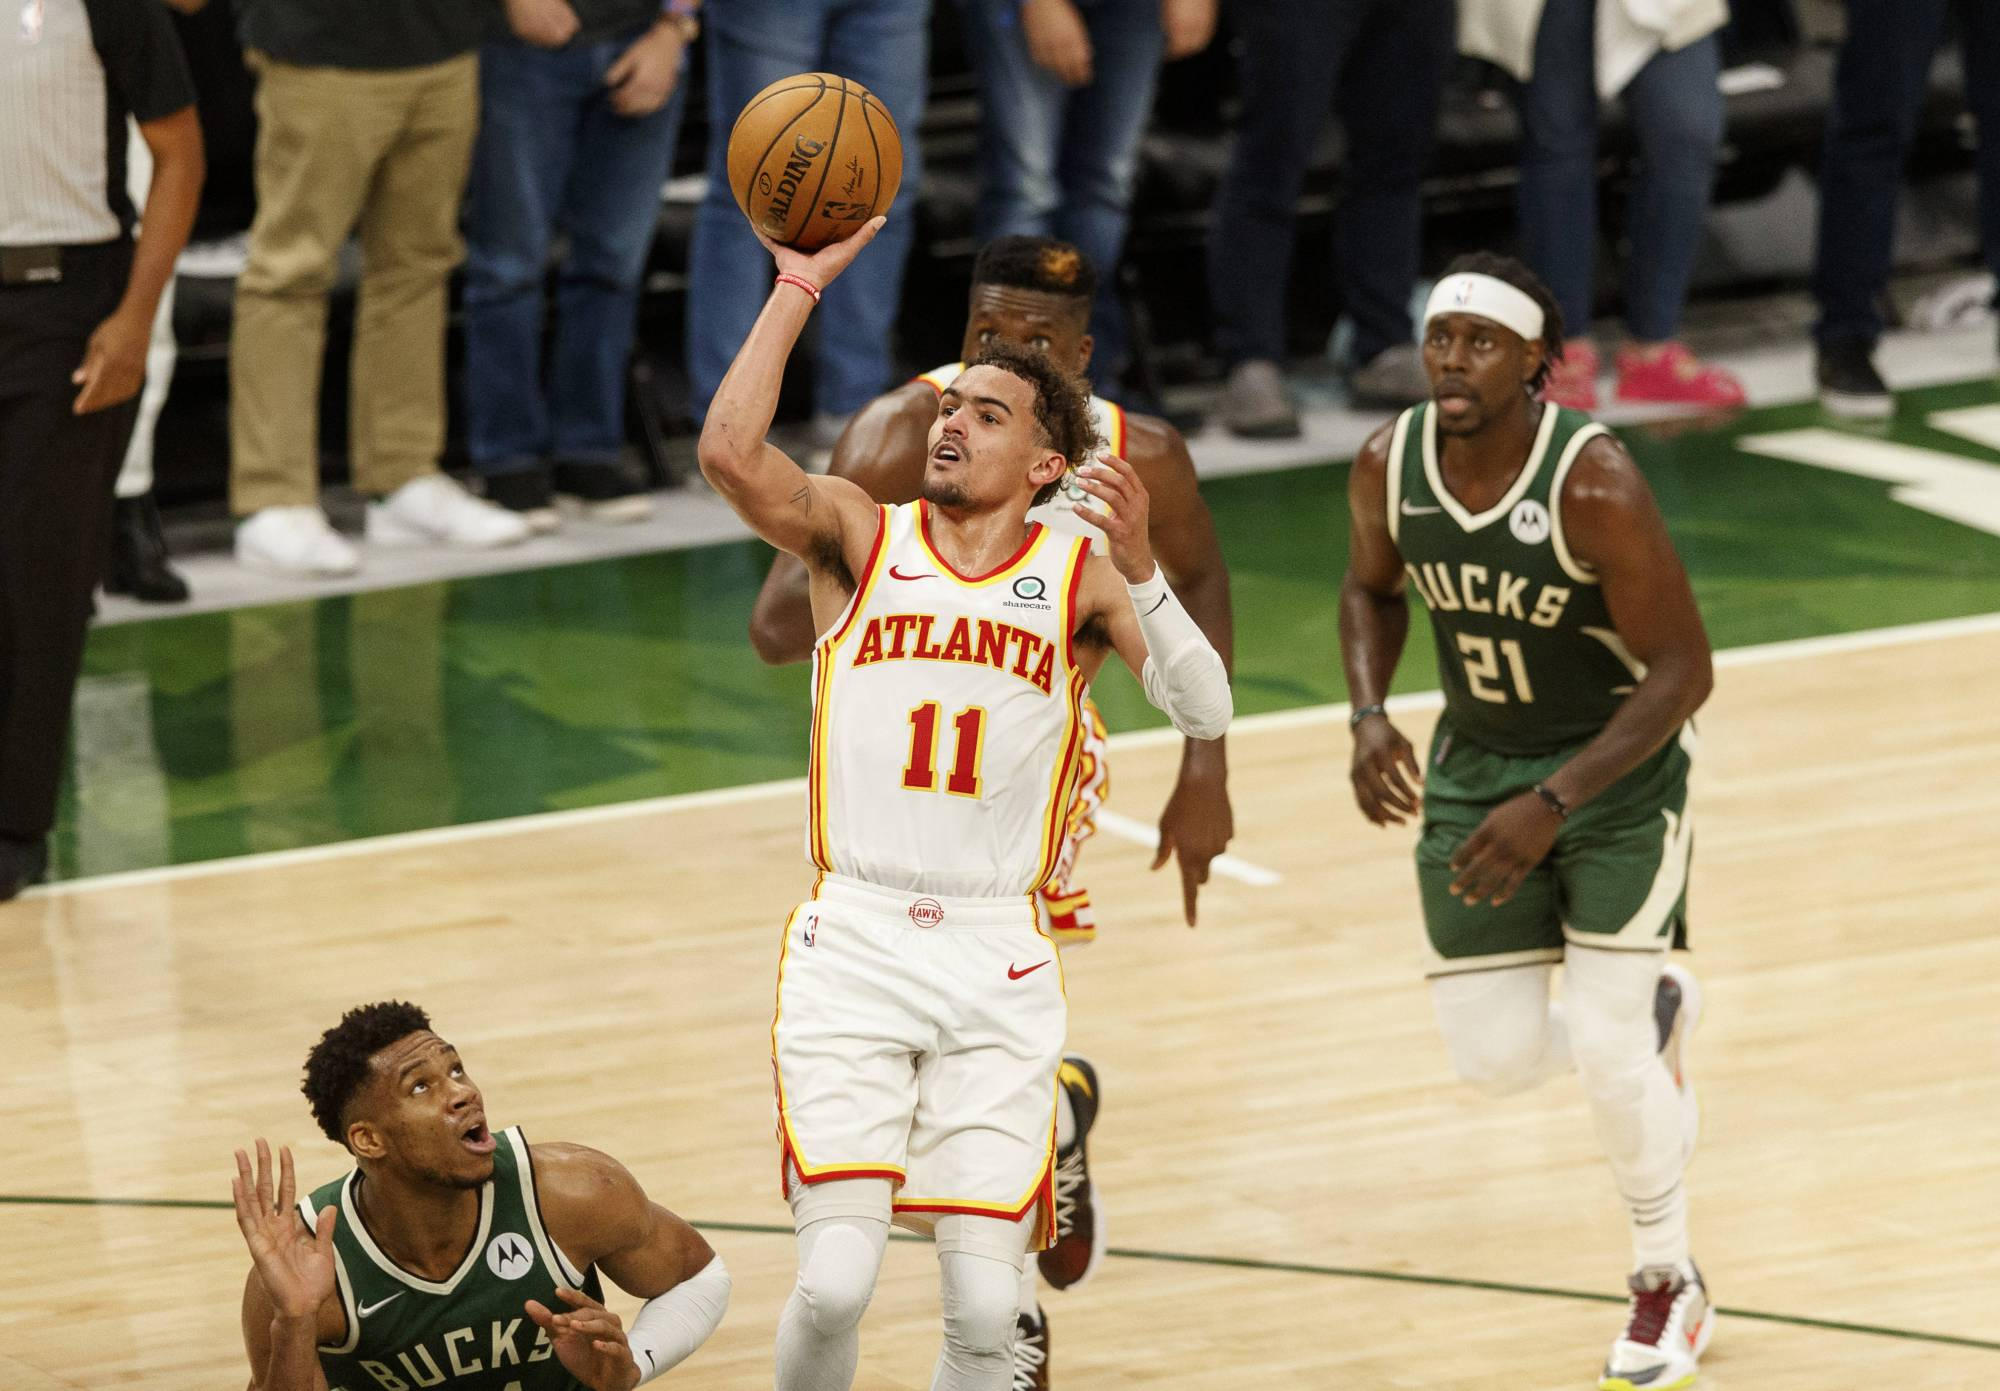 Hawks guard Trae Young attempts a shot against the Bucks during Game 1 of the Eastern Conference finals in Milwaukee on Wednesday.   USA TODAY / VIA REUTERS